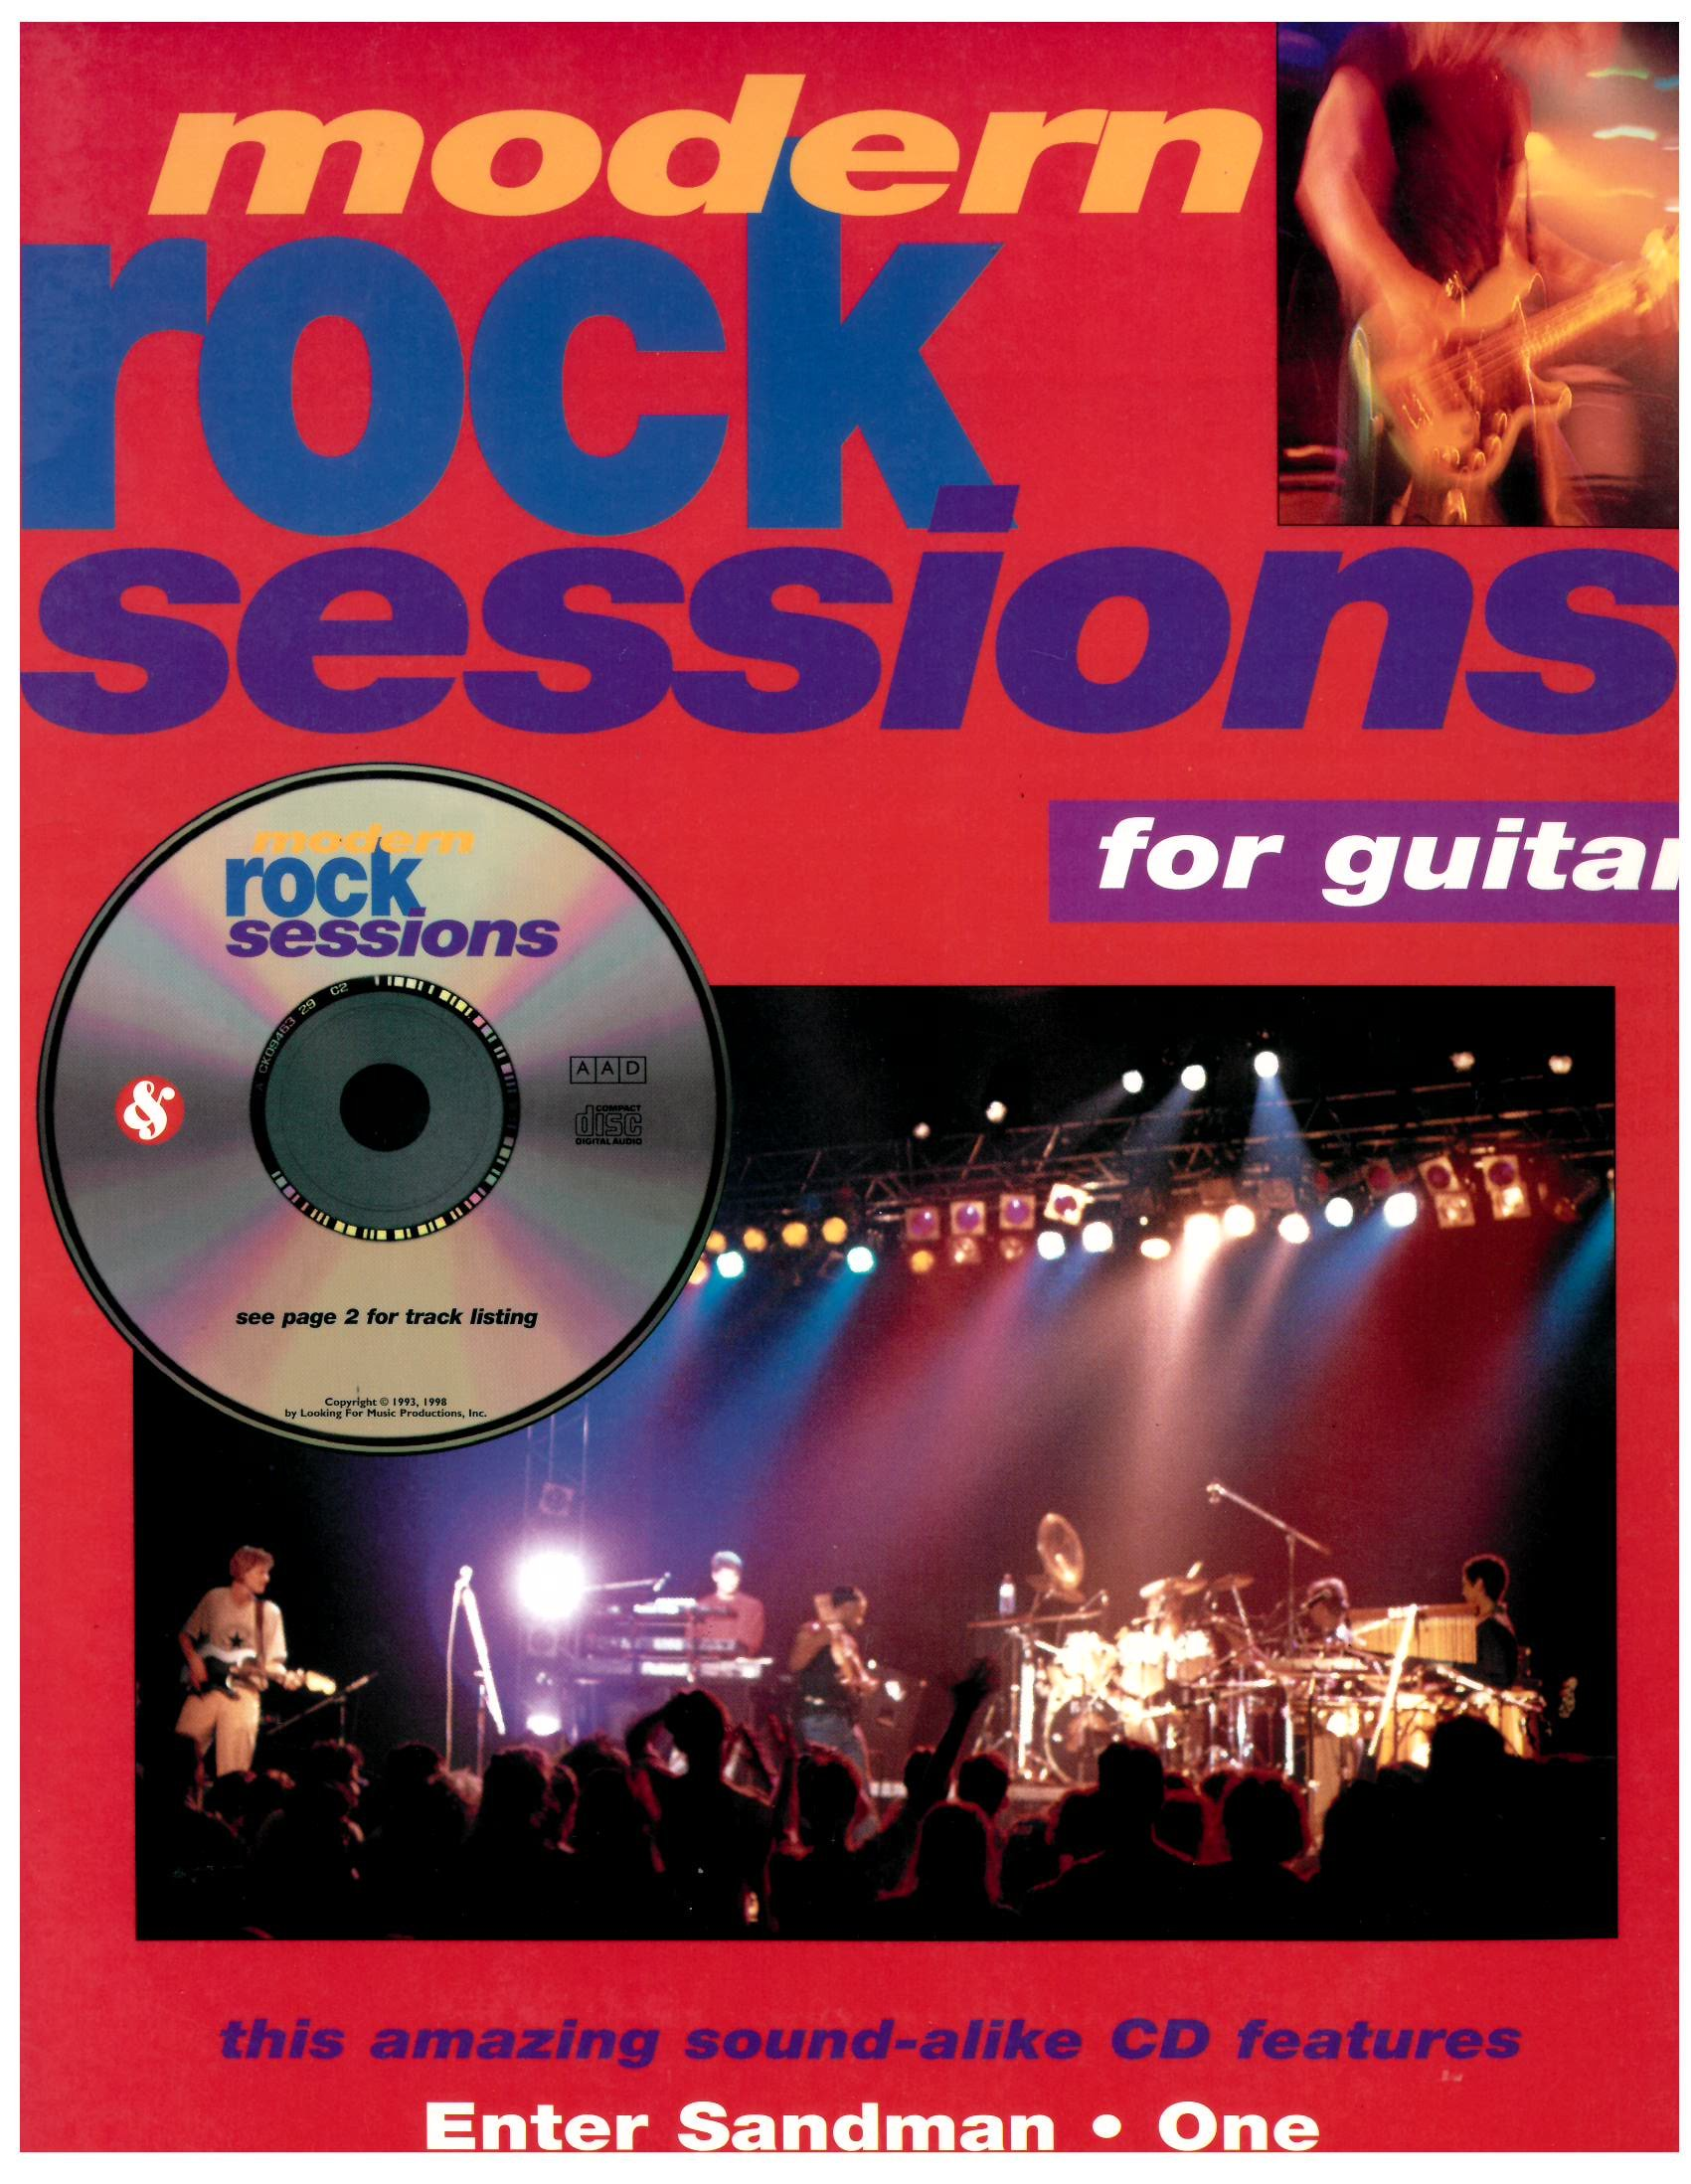 Modern Rock Sessions